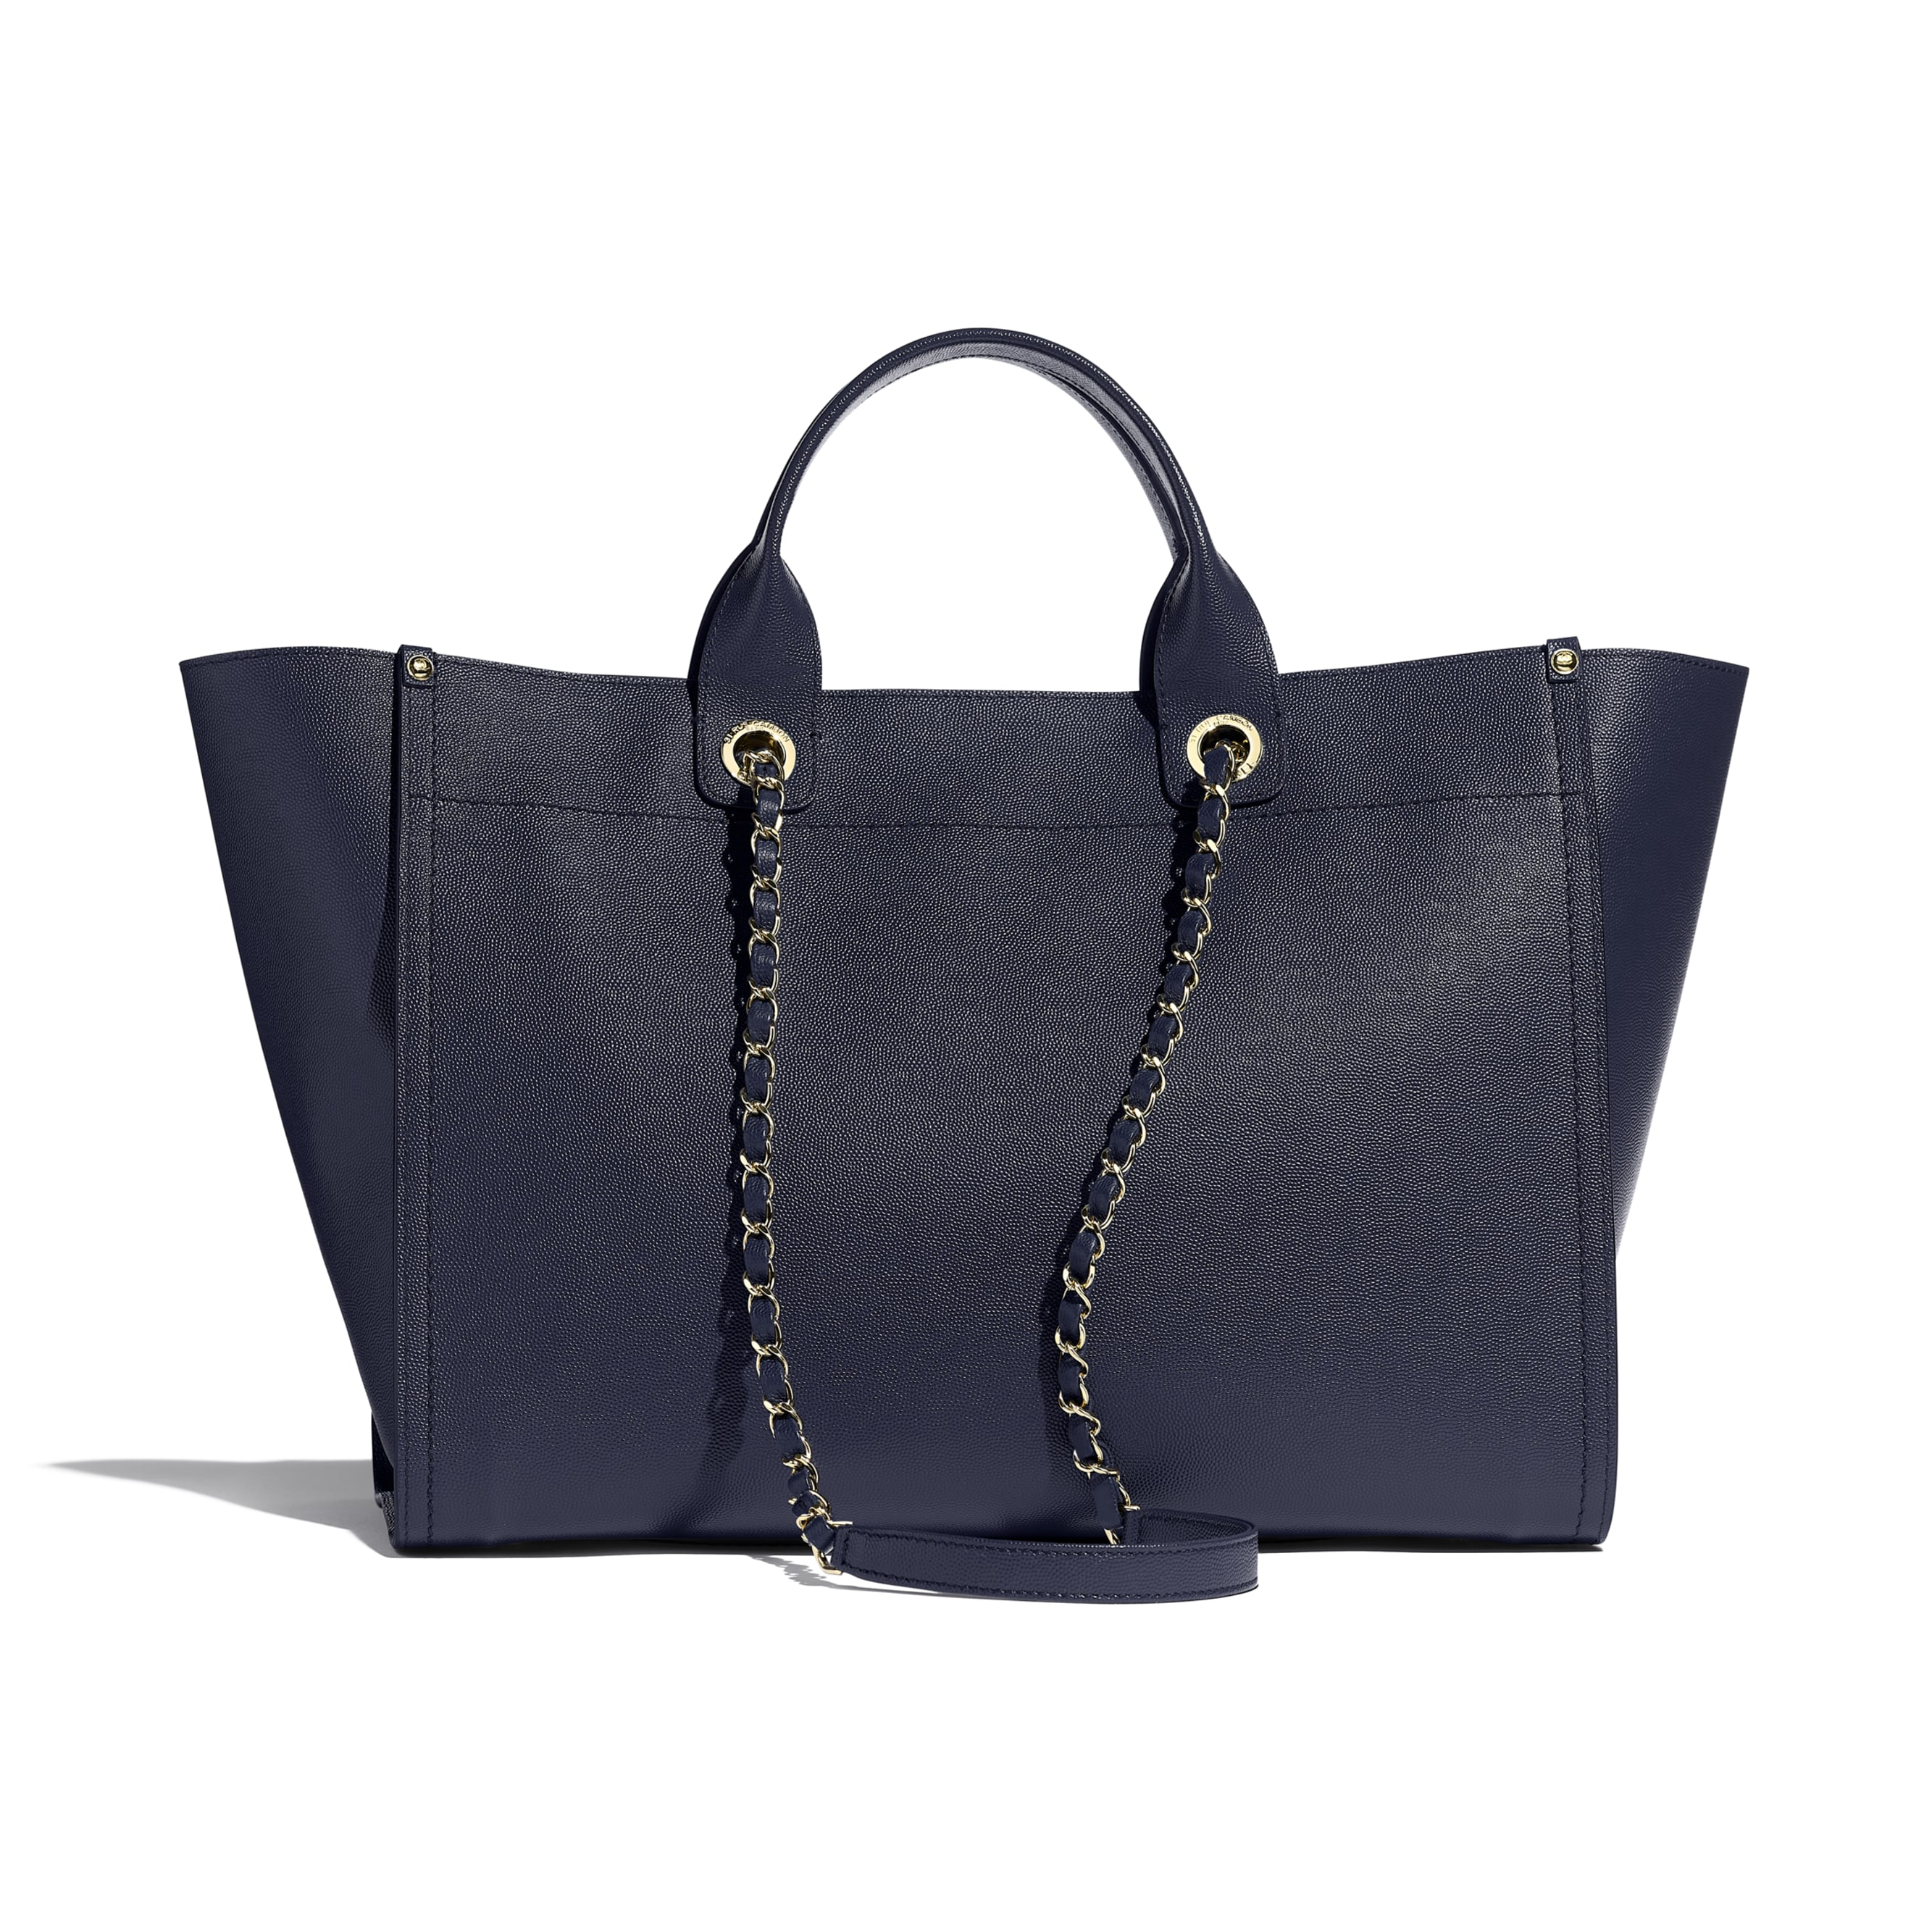 Large Shopping Bag - Navy Blue - Grained Calfskin & Gold-Tone Metal - CHANEL - Alternative view - see standard sized version